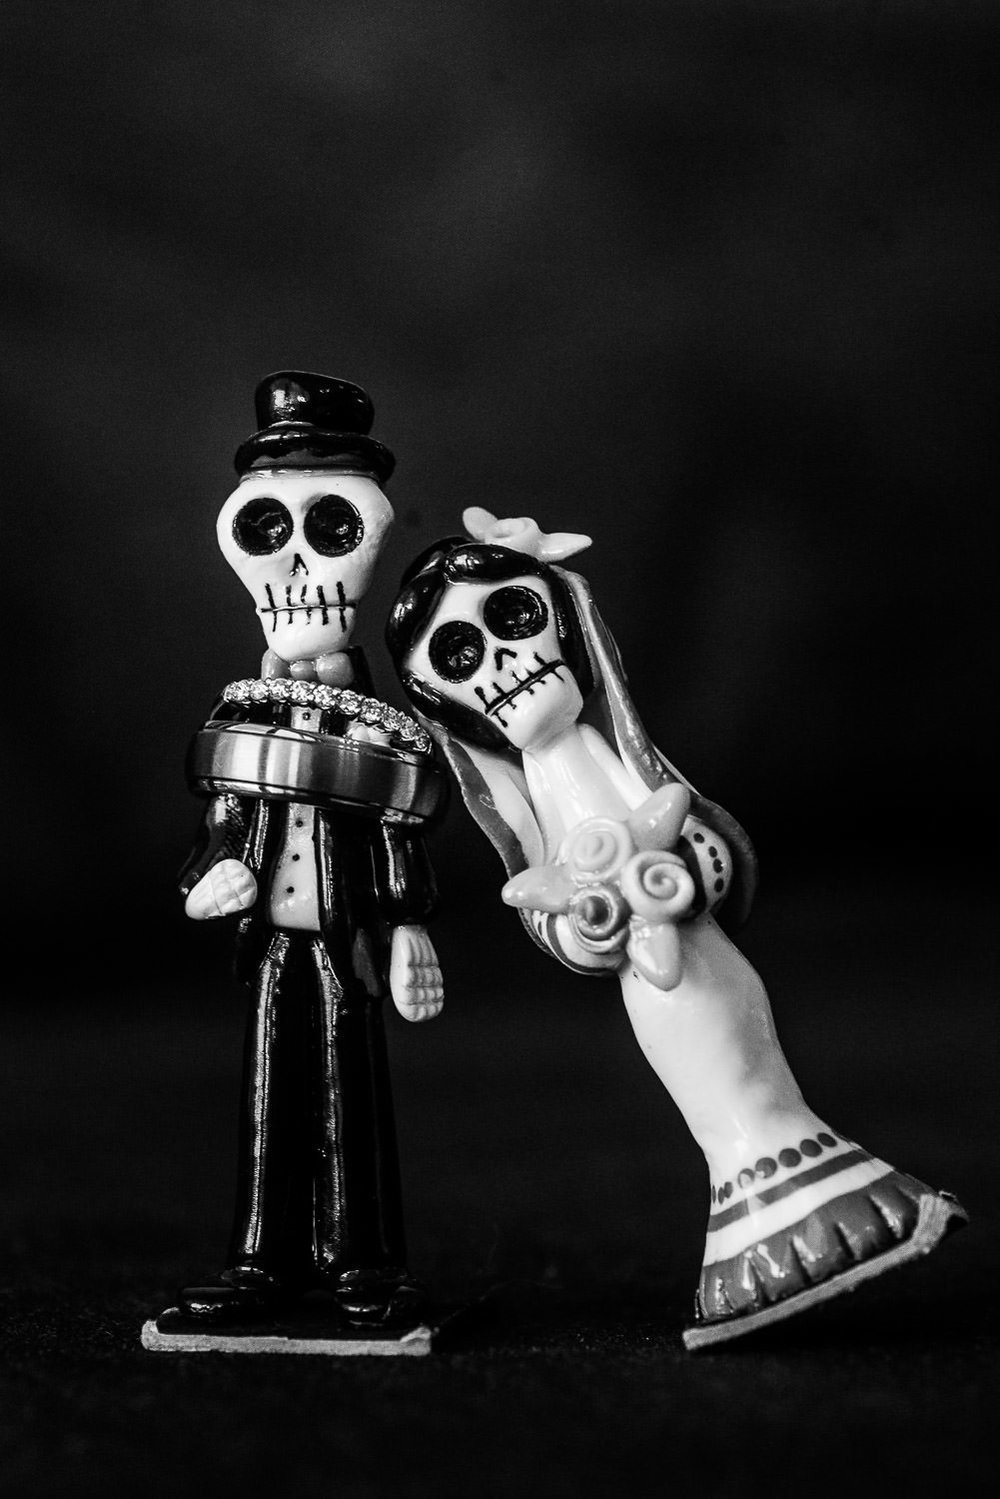 Wedding ring deatils with a mexican bride and groom calacas